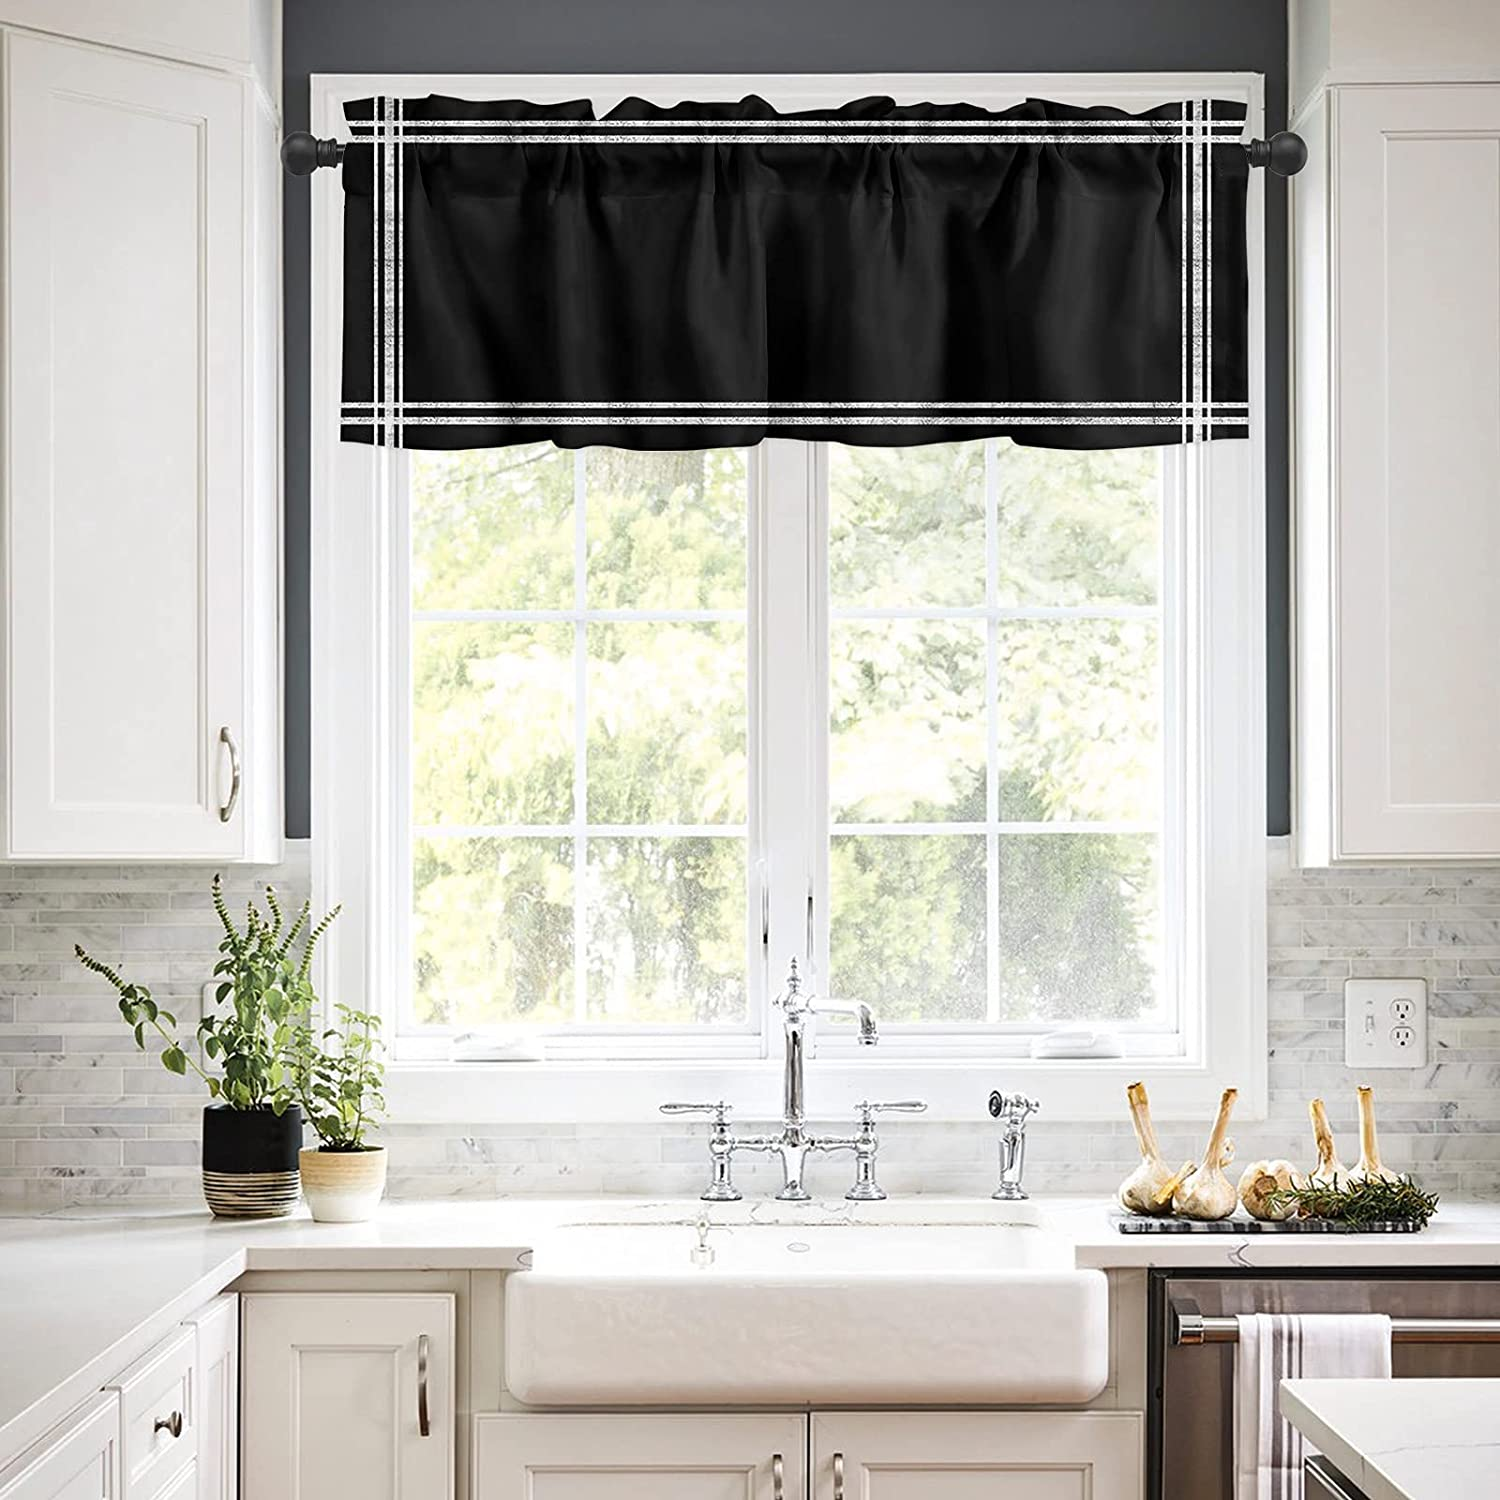 Rod Pocket Window Valances Curtains Solid Colo Black Tulsa Mall Kitchen High order for